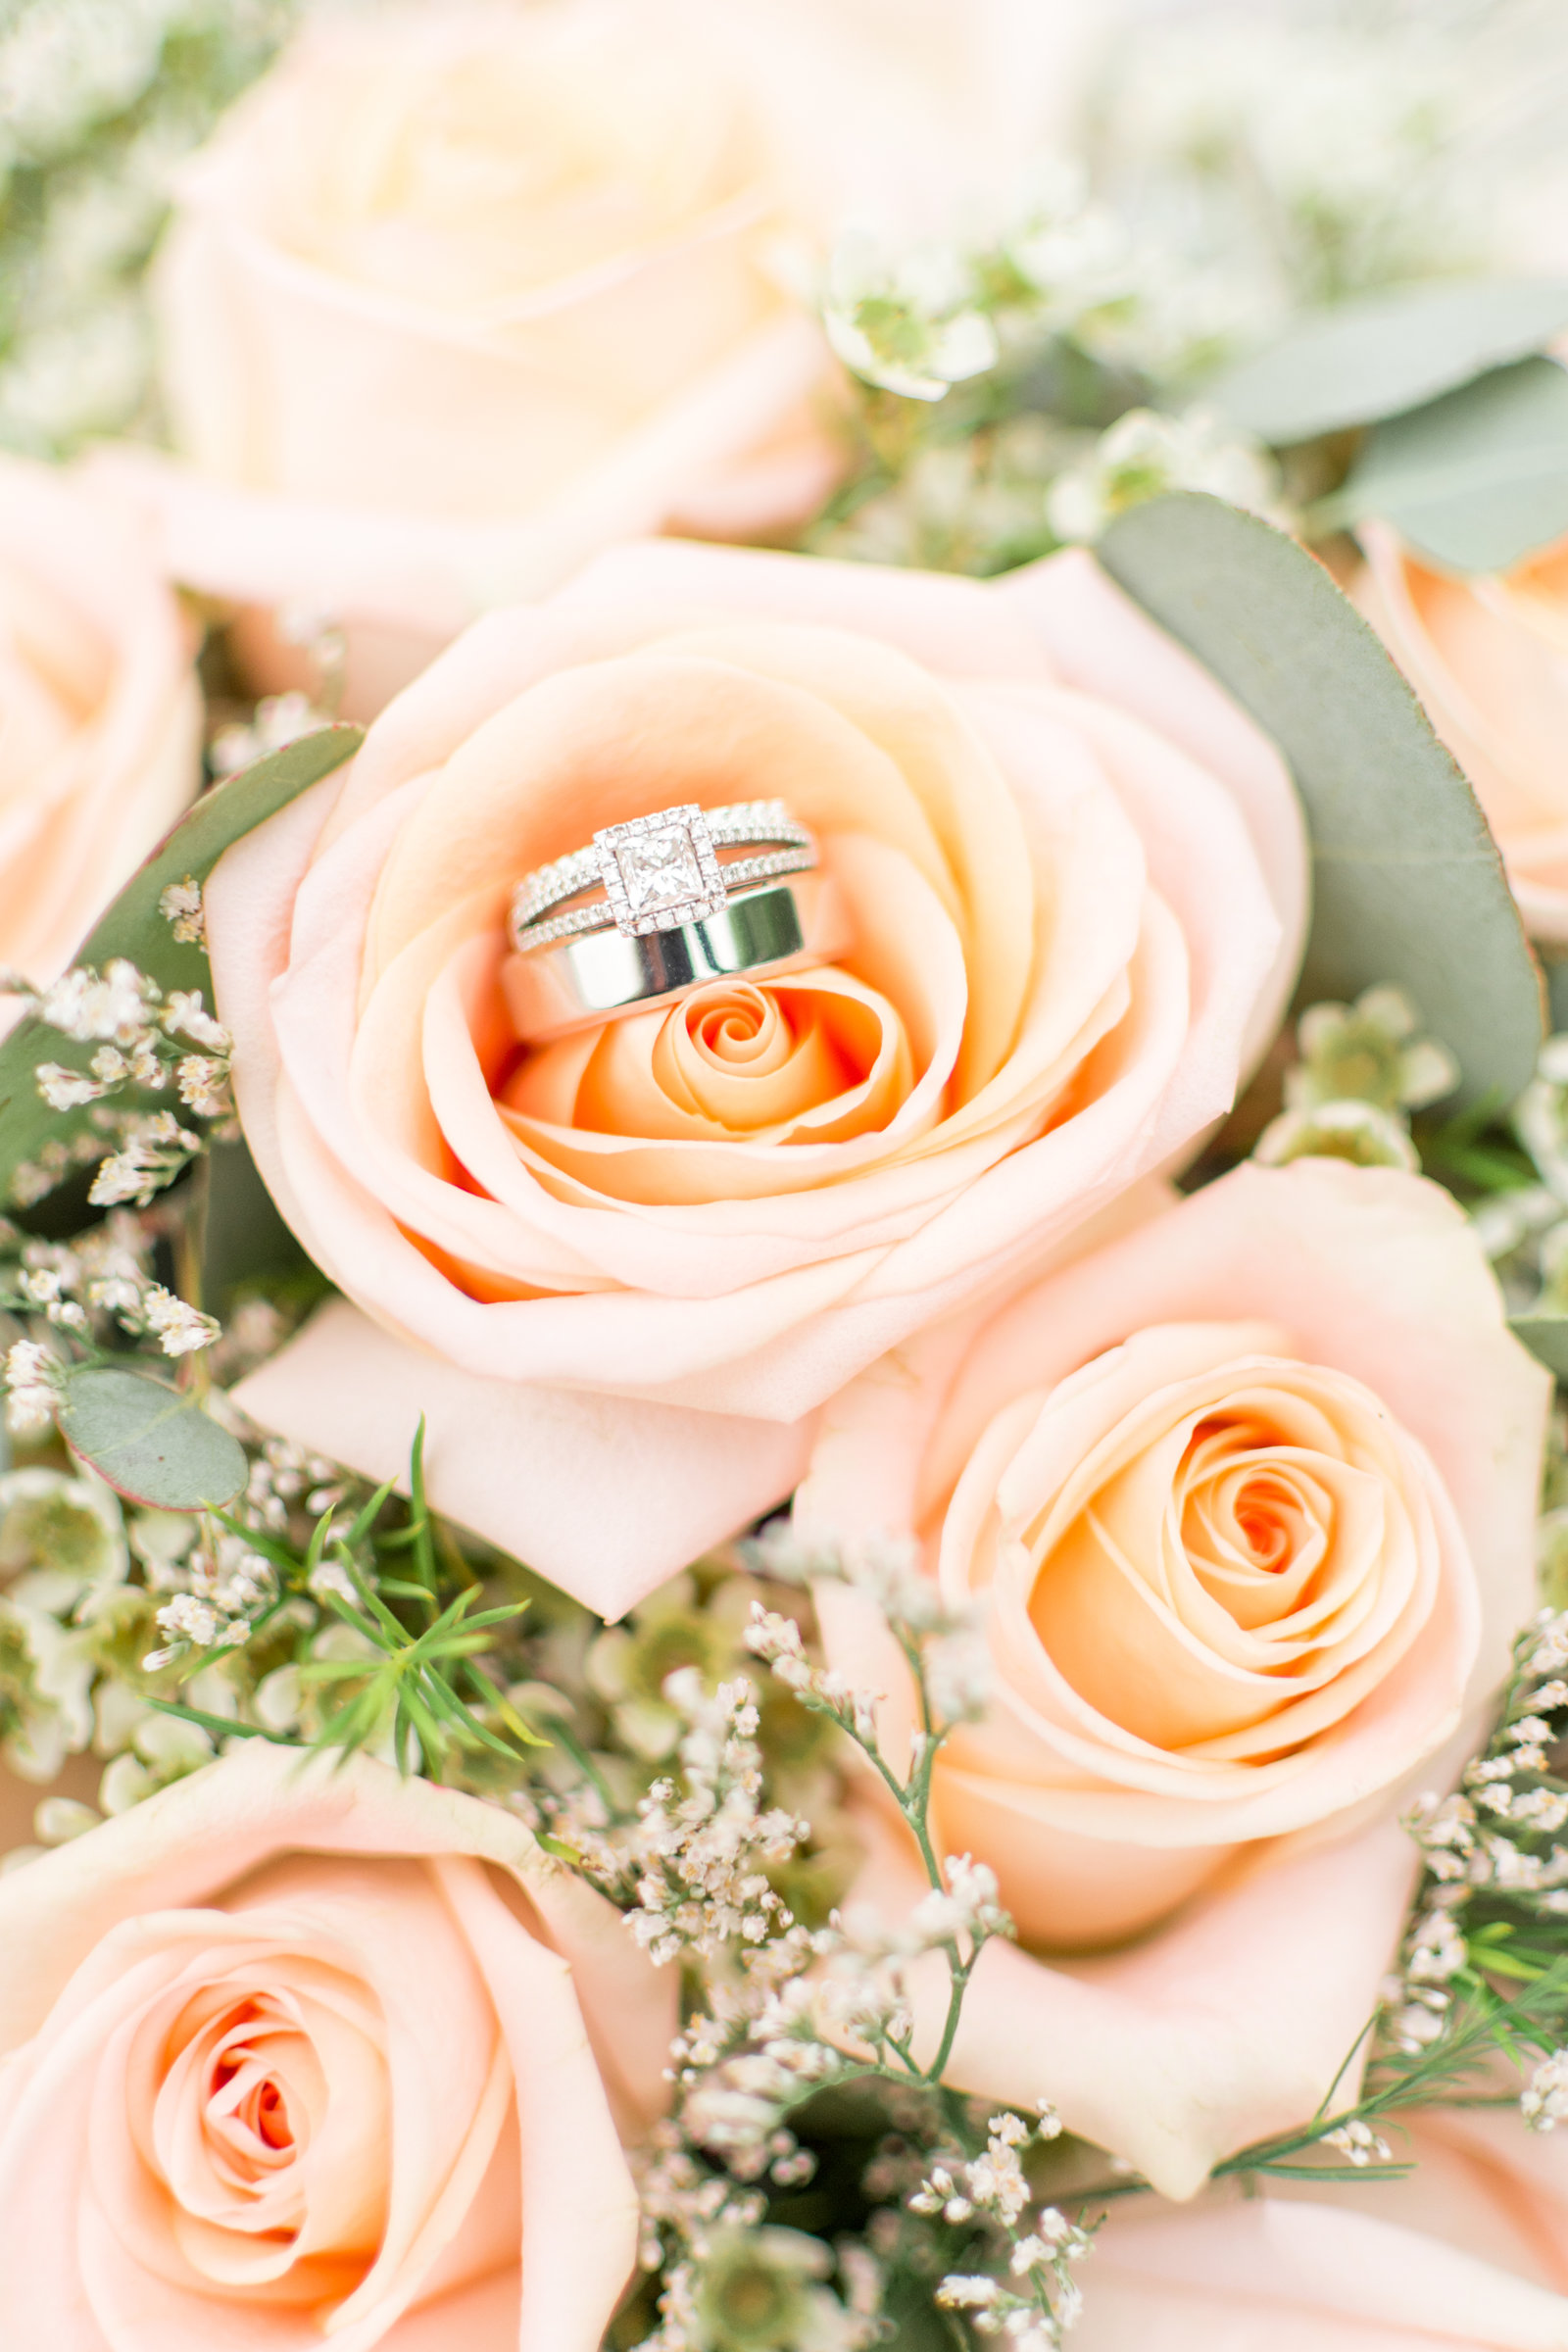 Princess Cut Ring in Peach Rose Bouquet